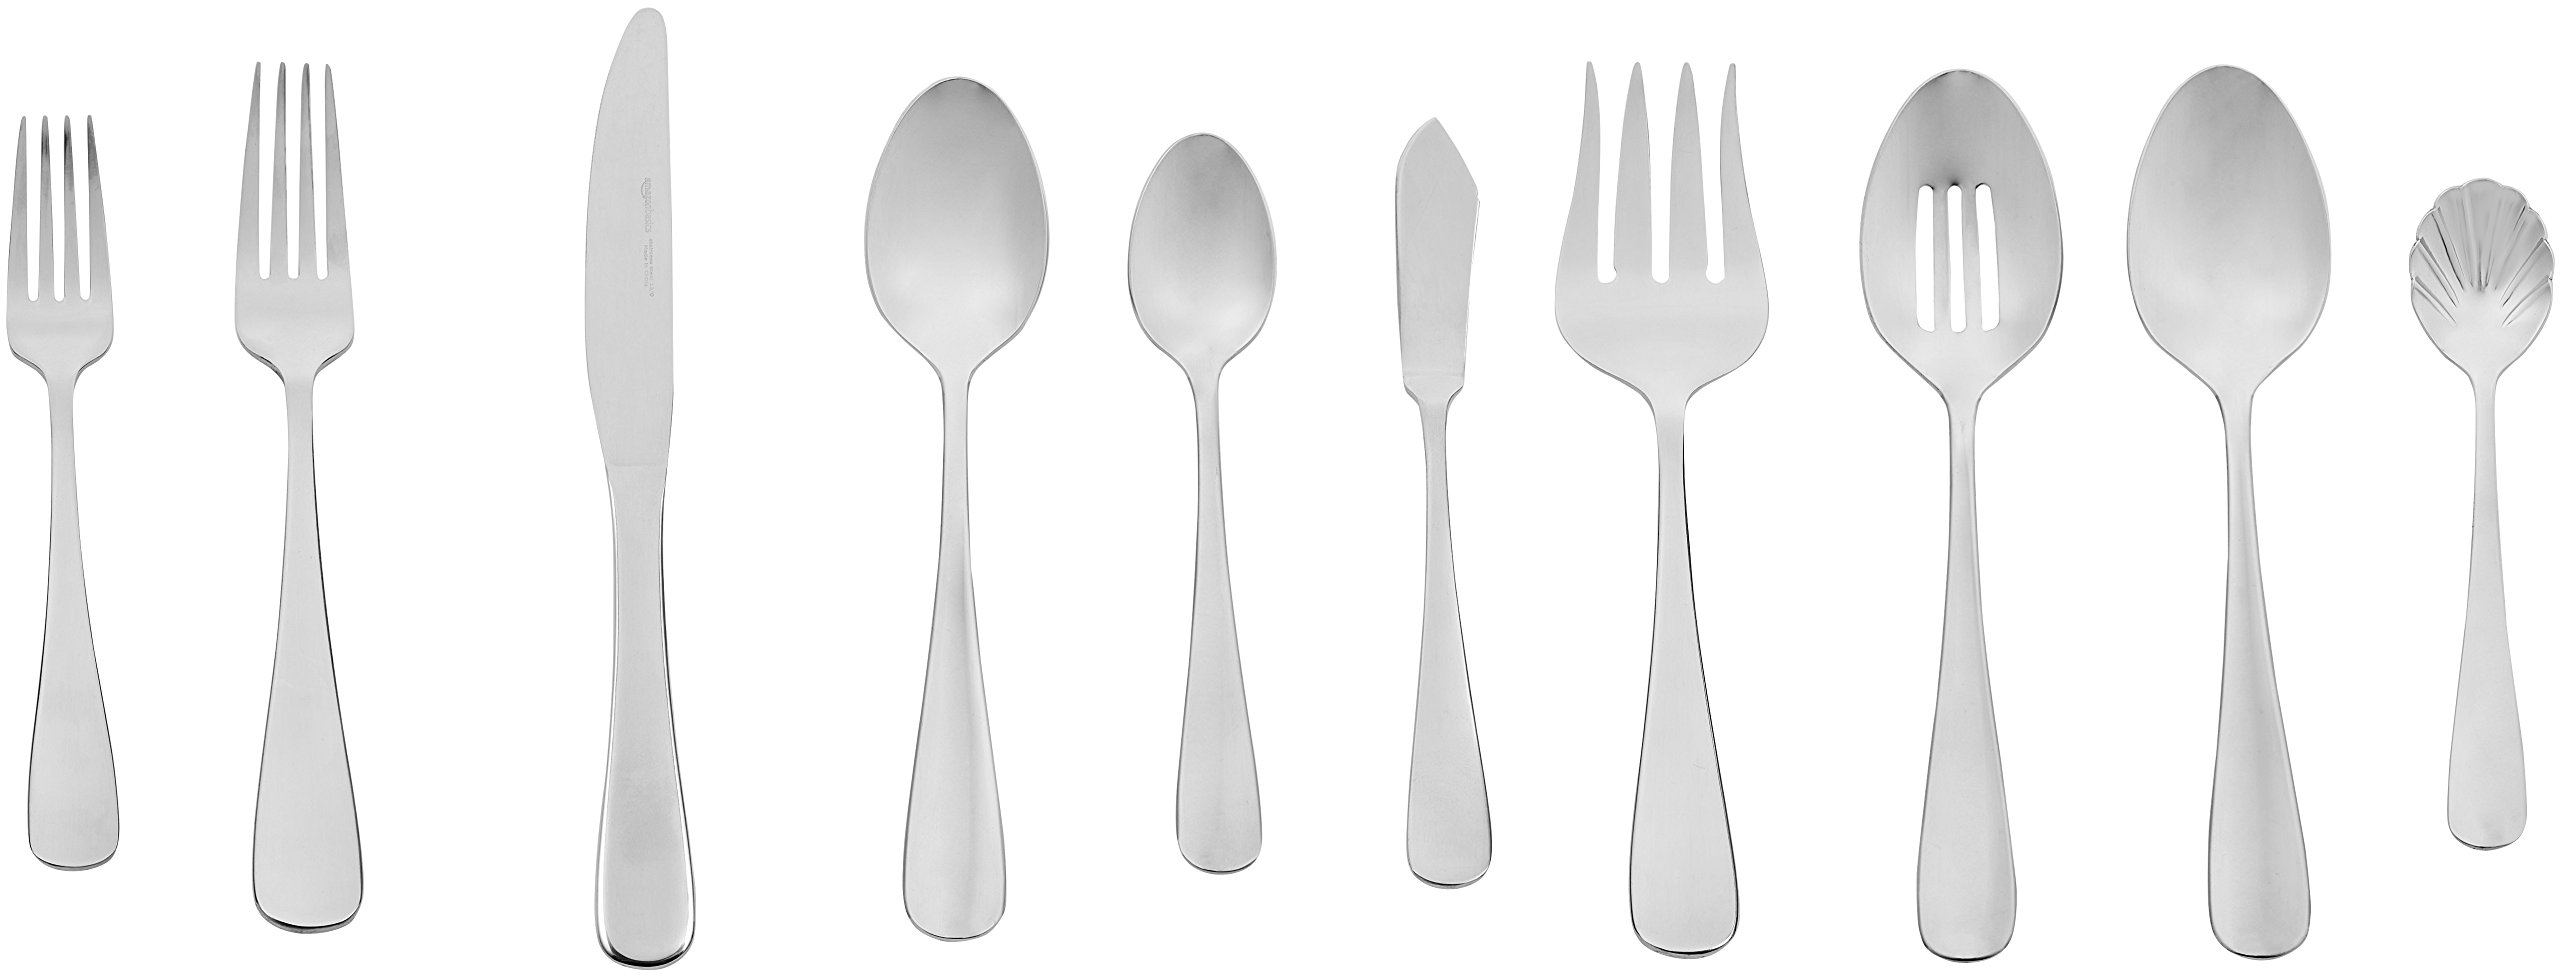 AmazonBasics 65-Piece Stainless Steel Flatware Set with Round Edge, Service for 12